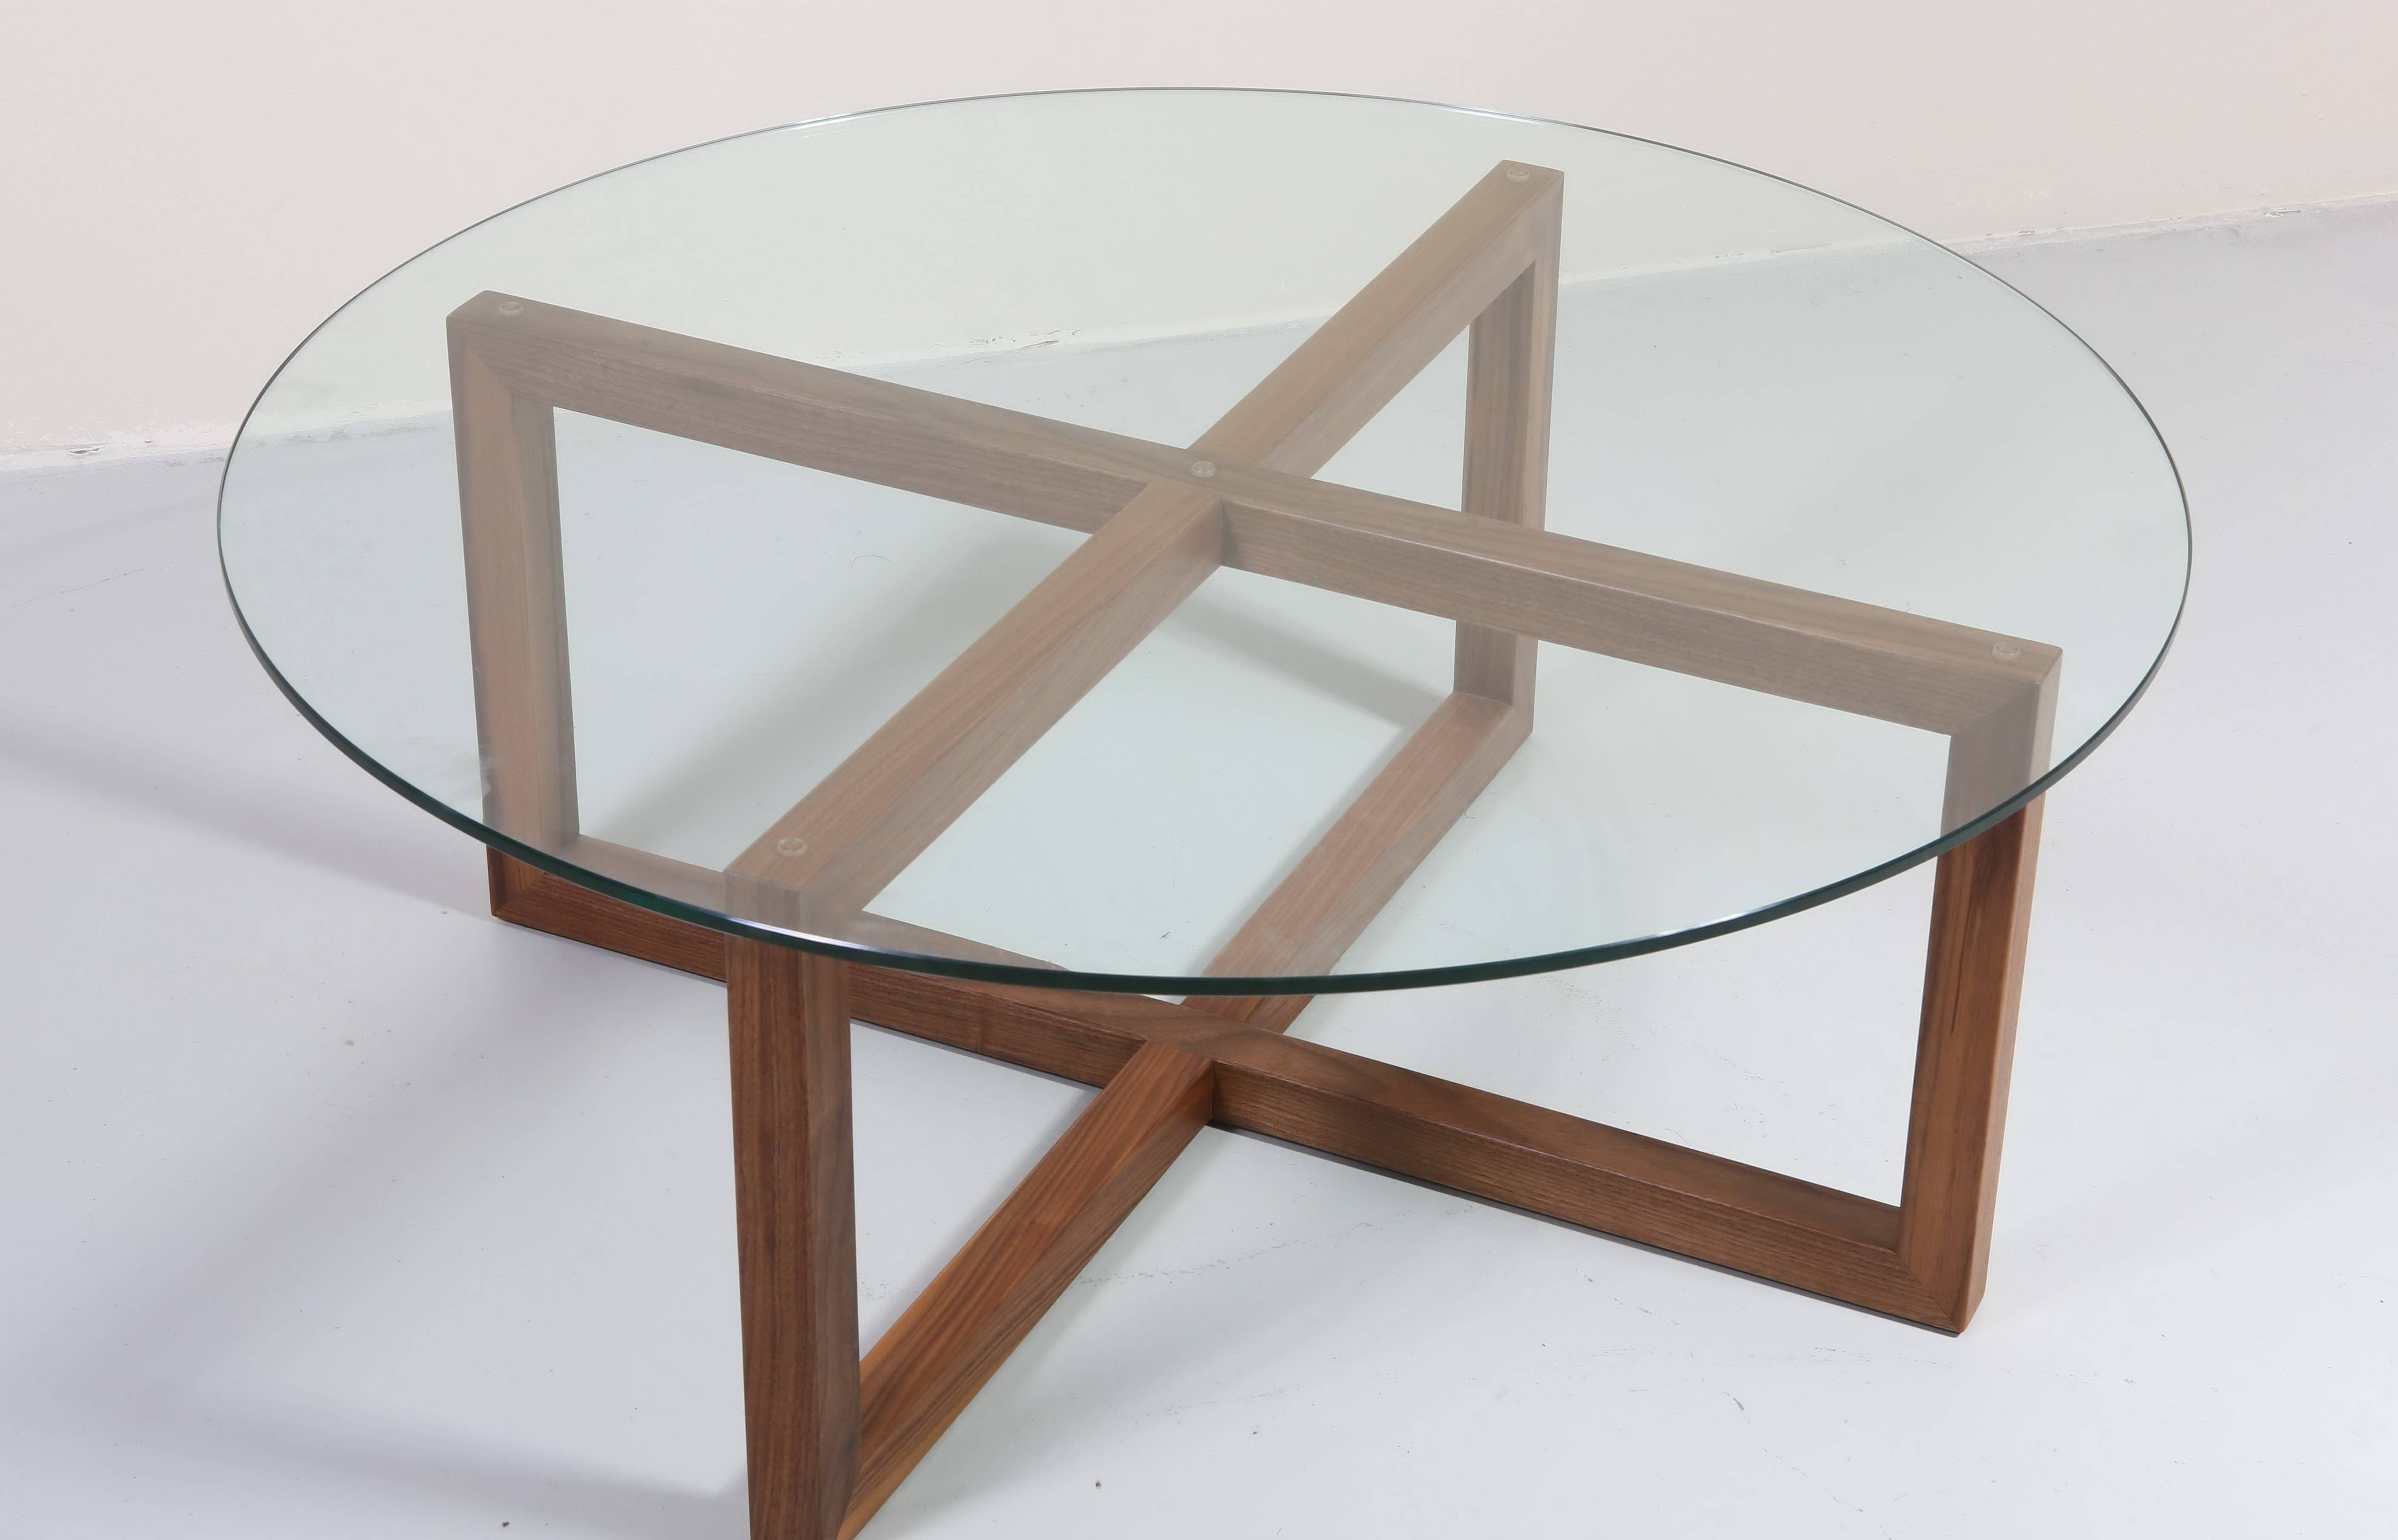 Coffee Tables: Marvellous Round Glass Coffee Tables Designs Large pertaining to Circular Glass Coffee Tables (Image 8 of 30)